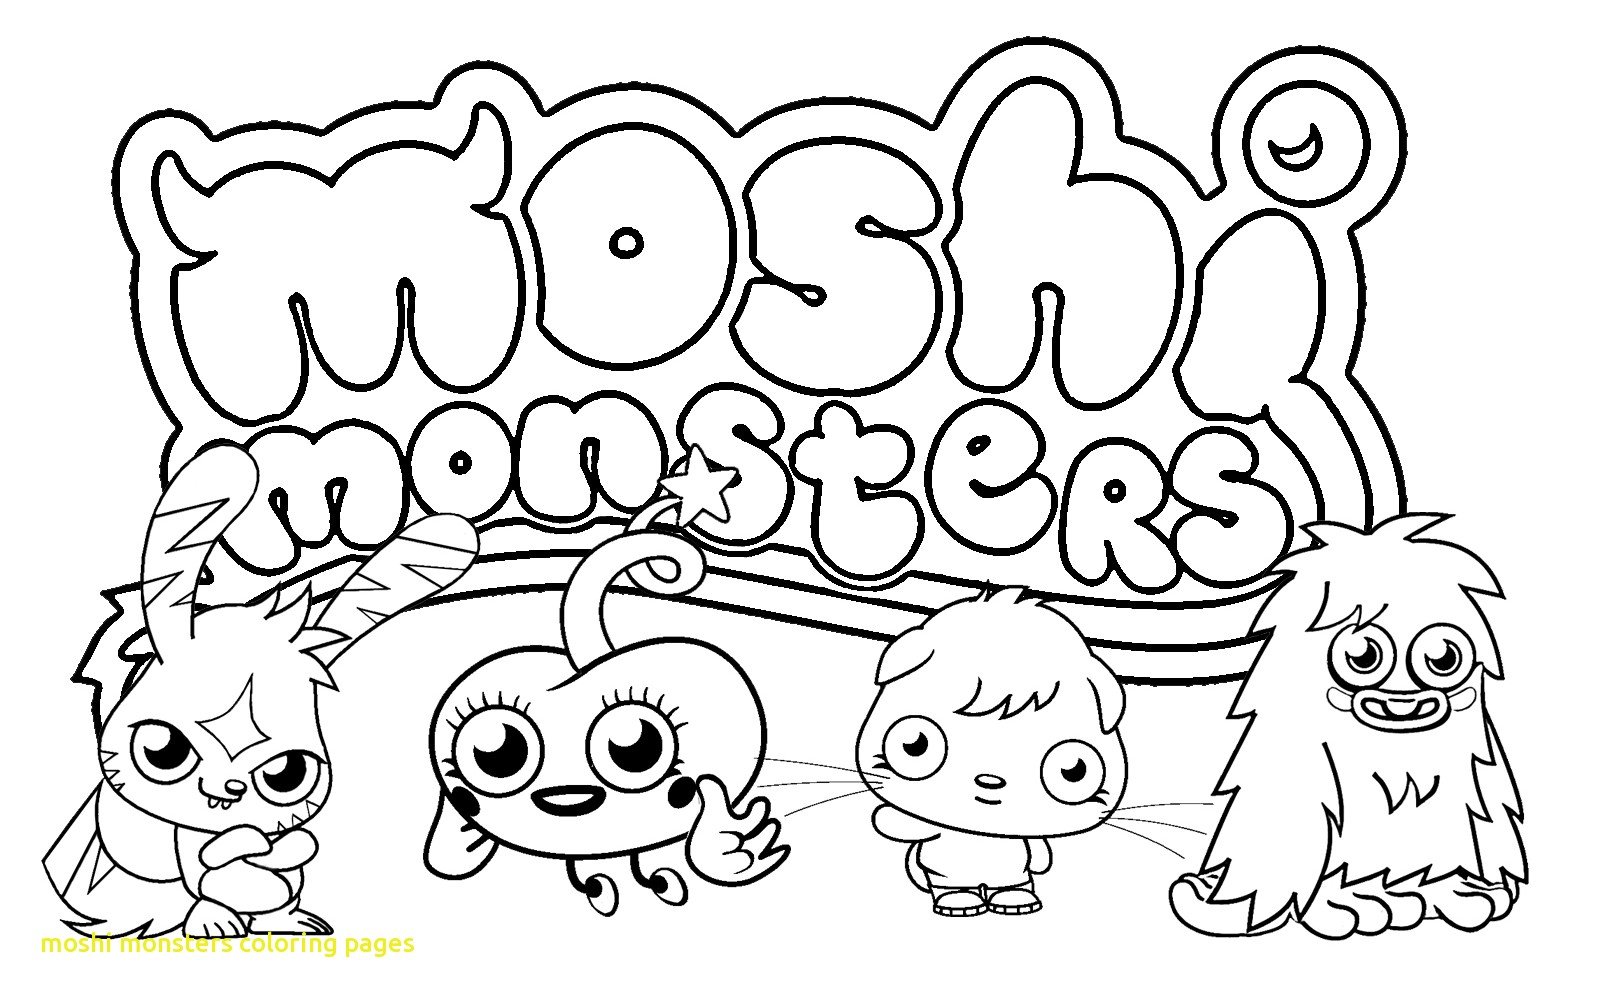 1600x1000 Moshi Monsters Coloring Pages With Free Printable Moshi Monster